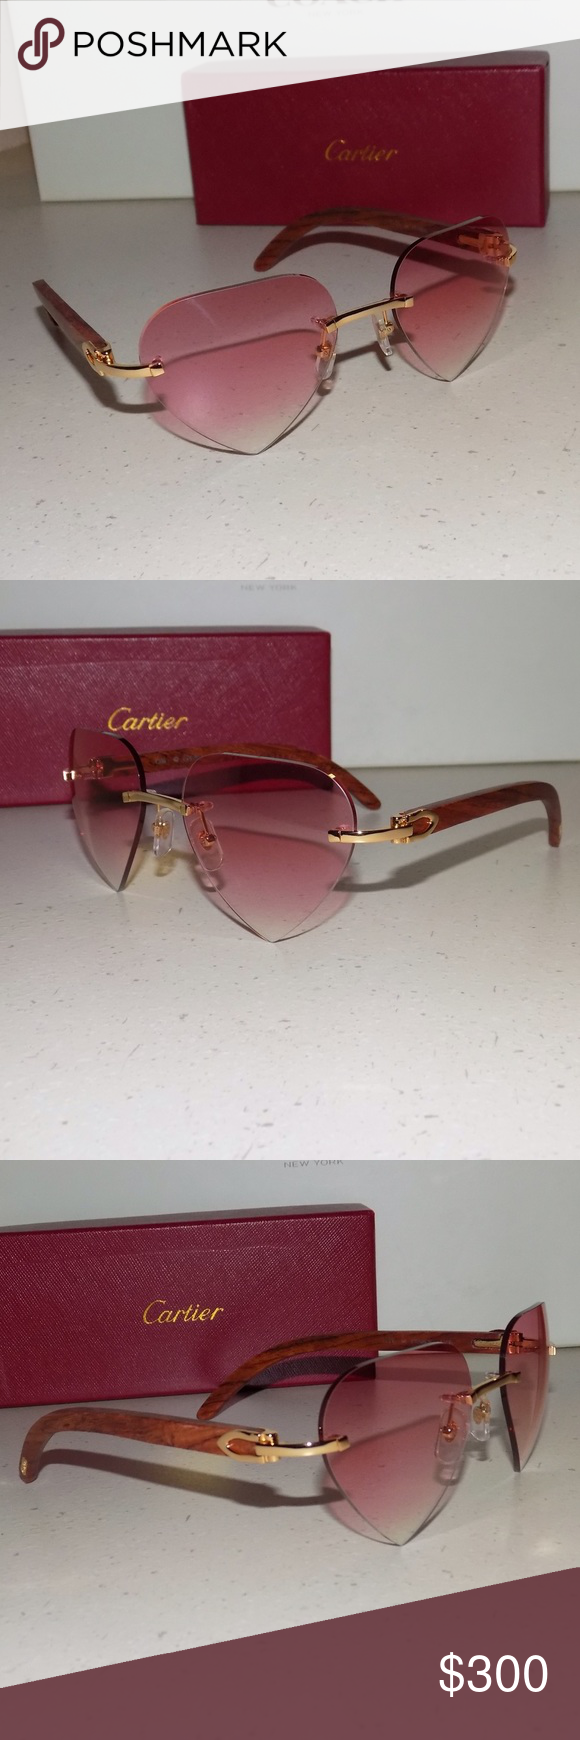 1d2e038f970 Cartier Custom Valentine Pink Heart Lens Size  52 Lenses-18 Bridge-135B  Temples mm USED pair of Cartier display demonstration model Sunglasses with  altered ...